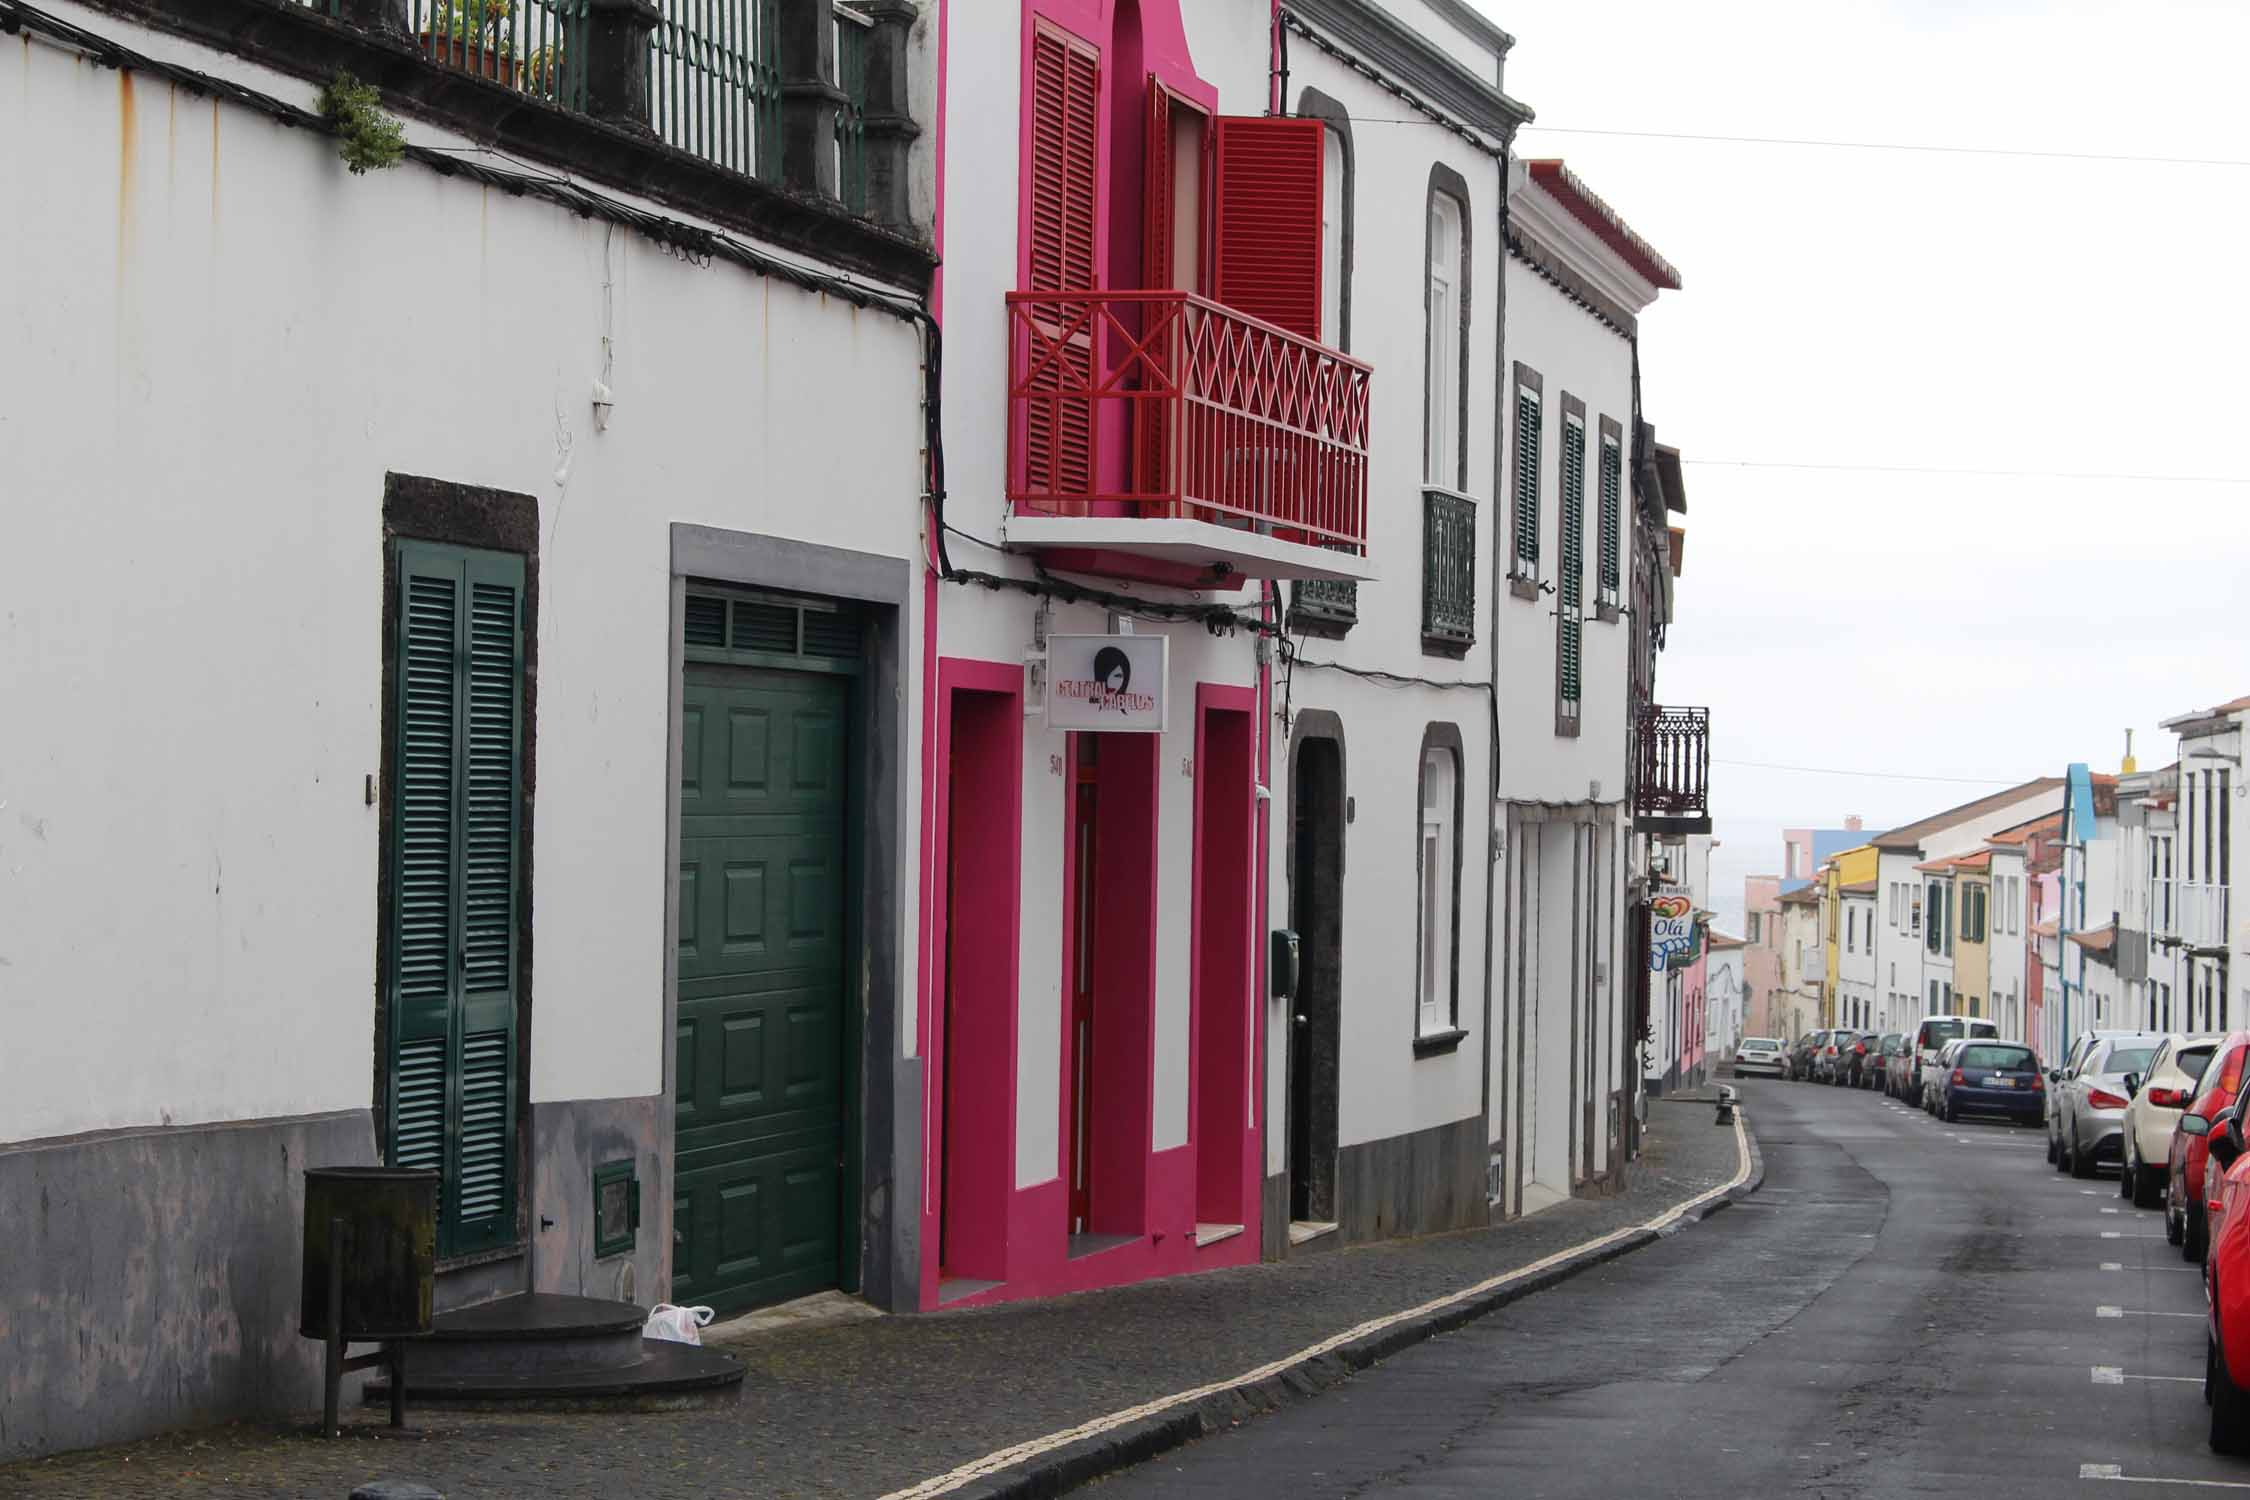 A typical street in Lagoa, São Miguel island, Azores